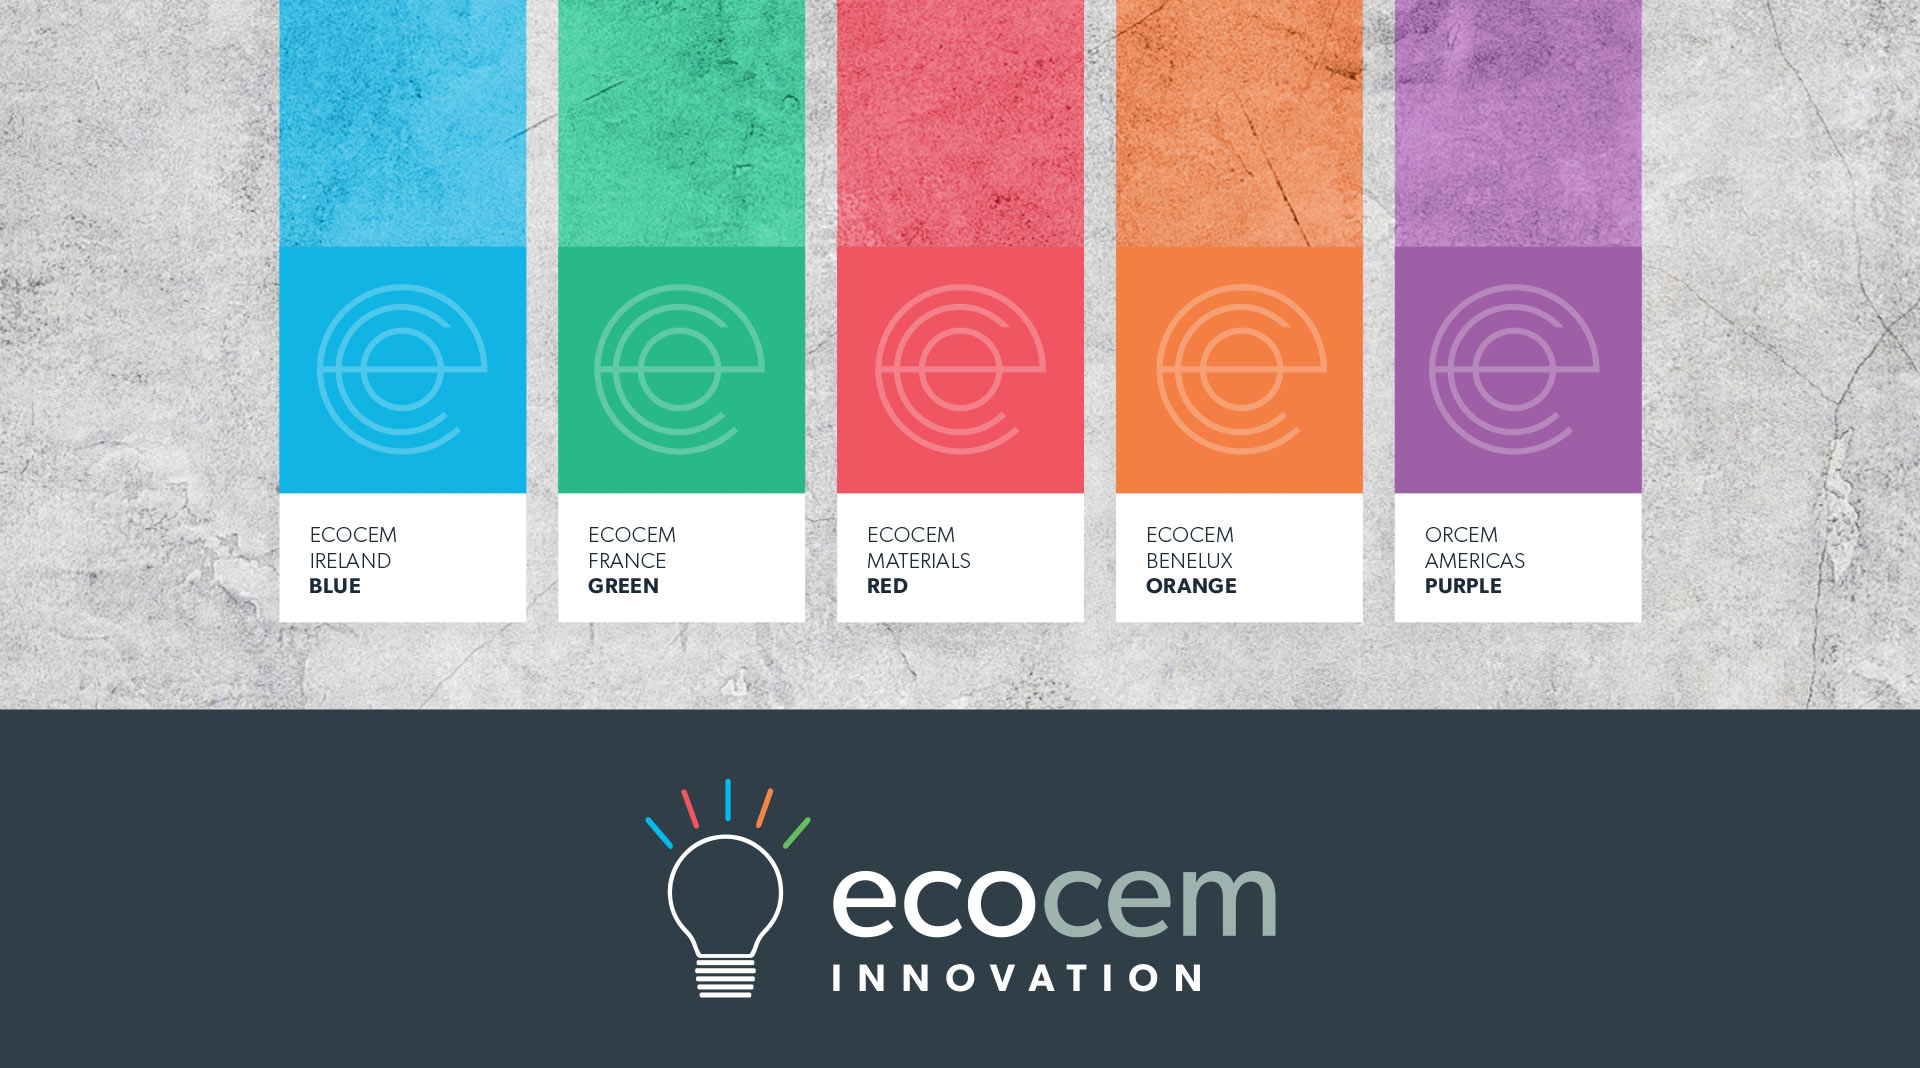 Ecocem colour breakdowns for different subsidiaries